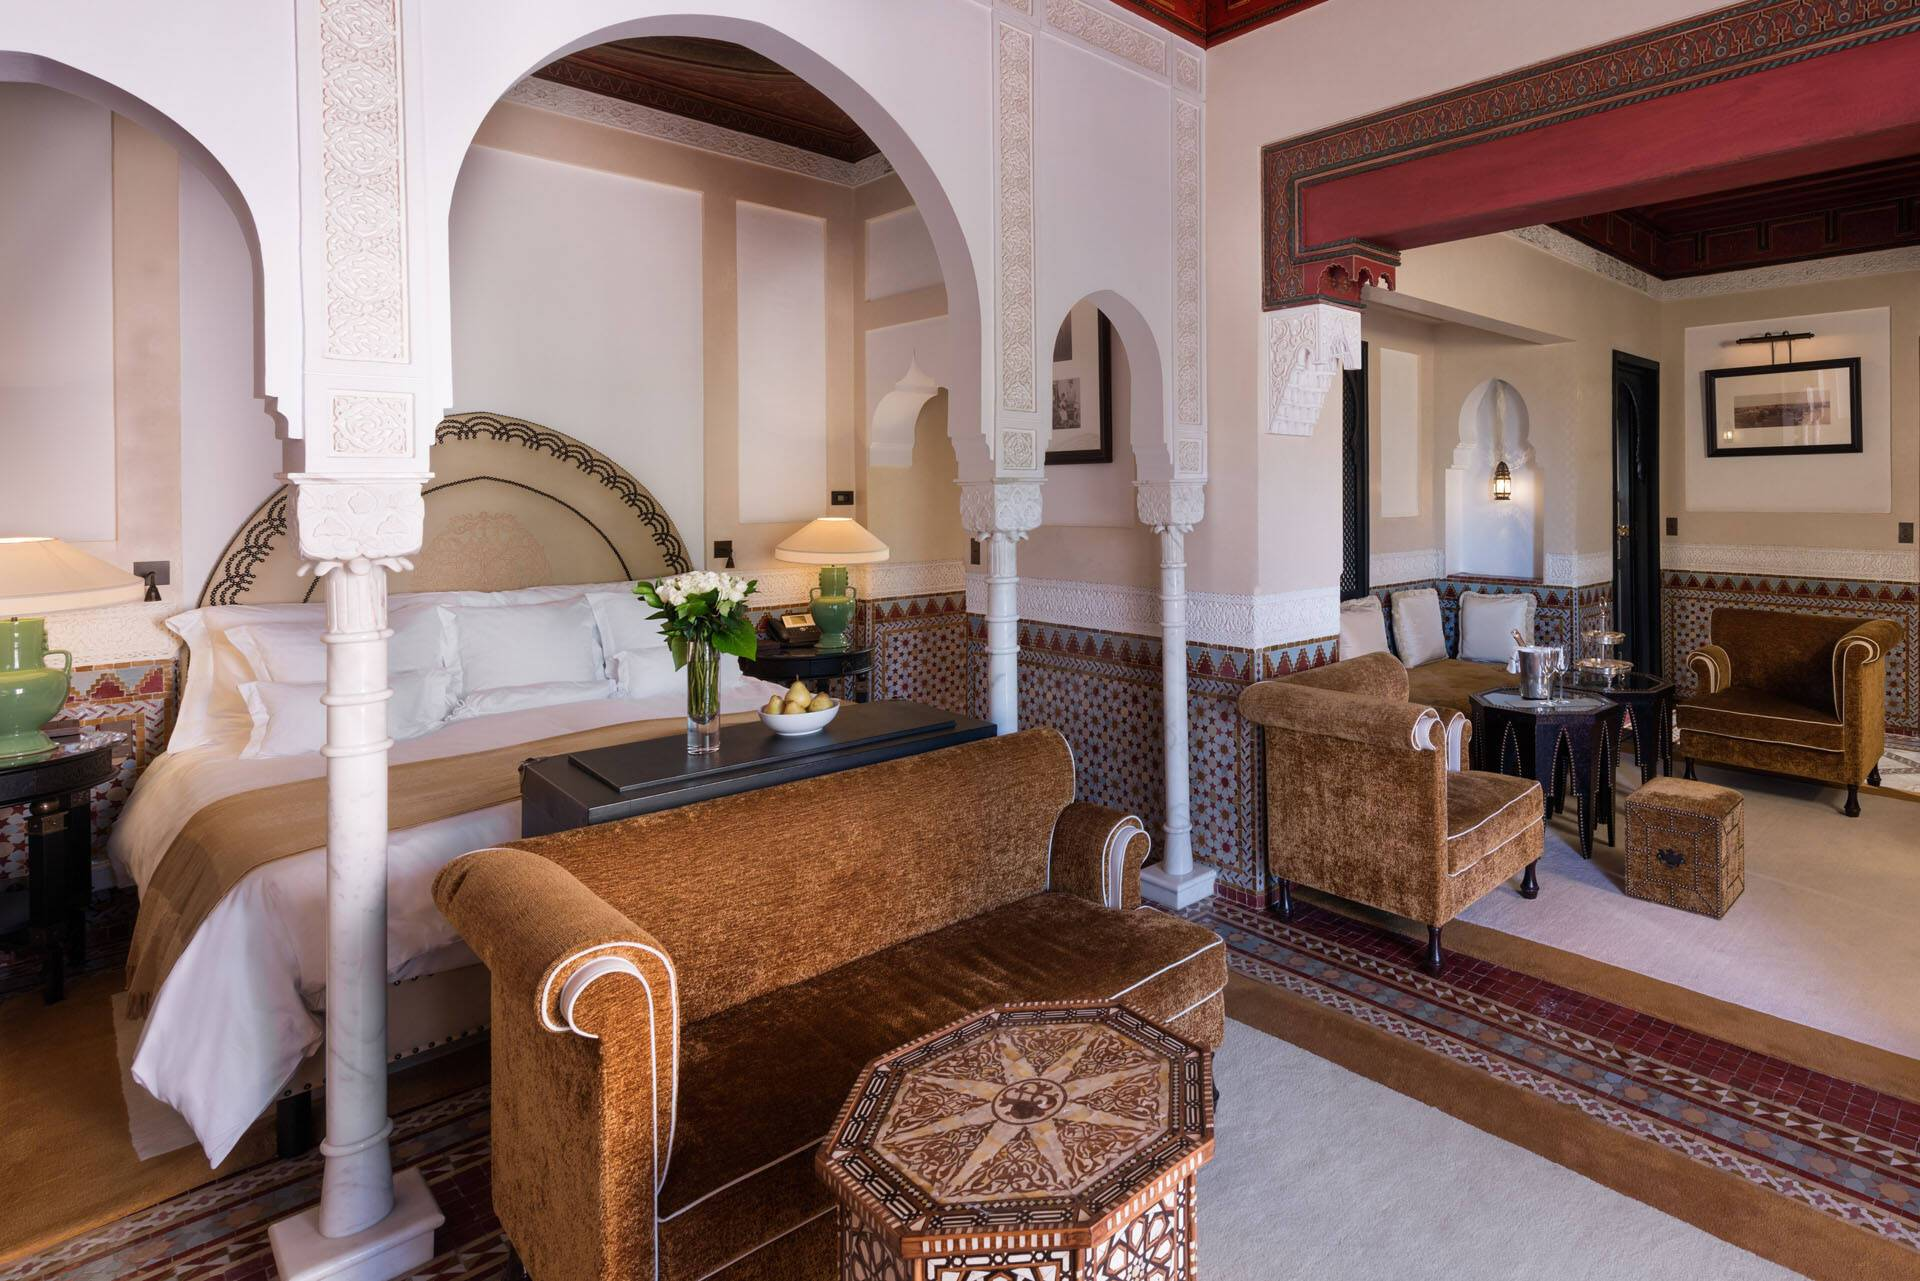 Mamounia Marrakech Suite Agdal